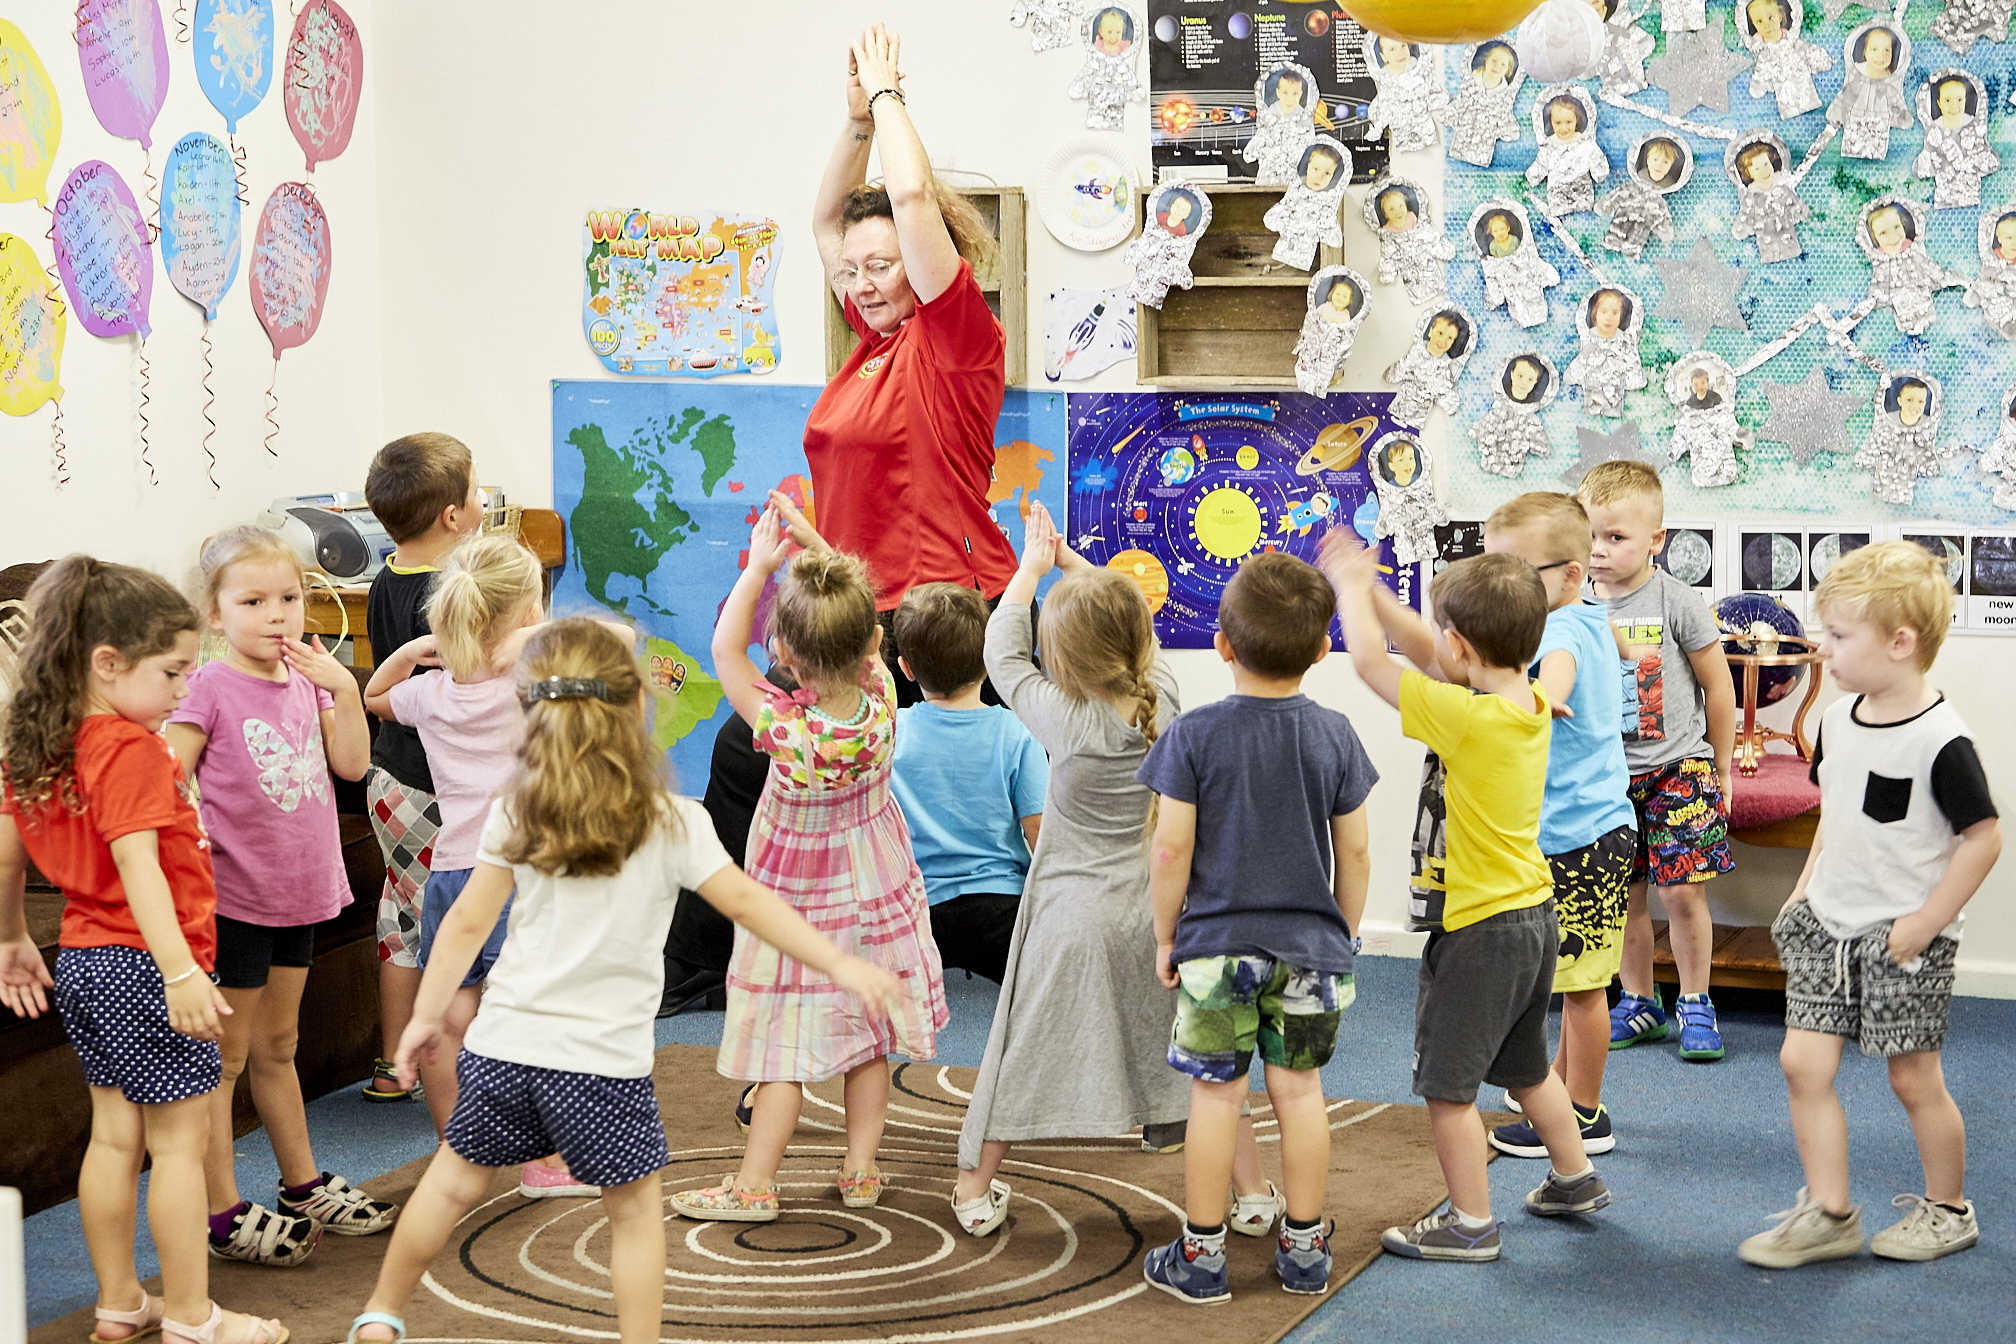 child care educator dancing with group of children in classroom